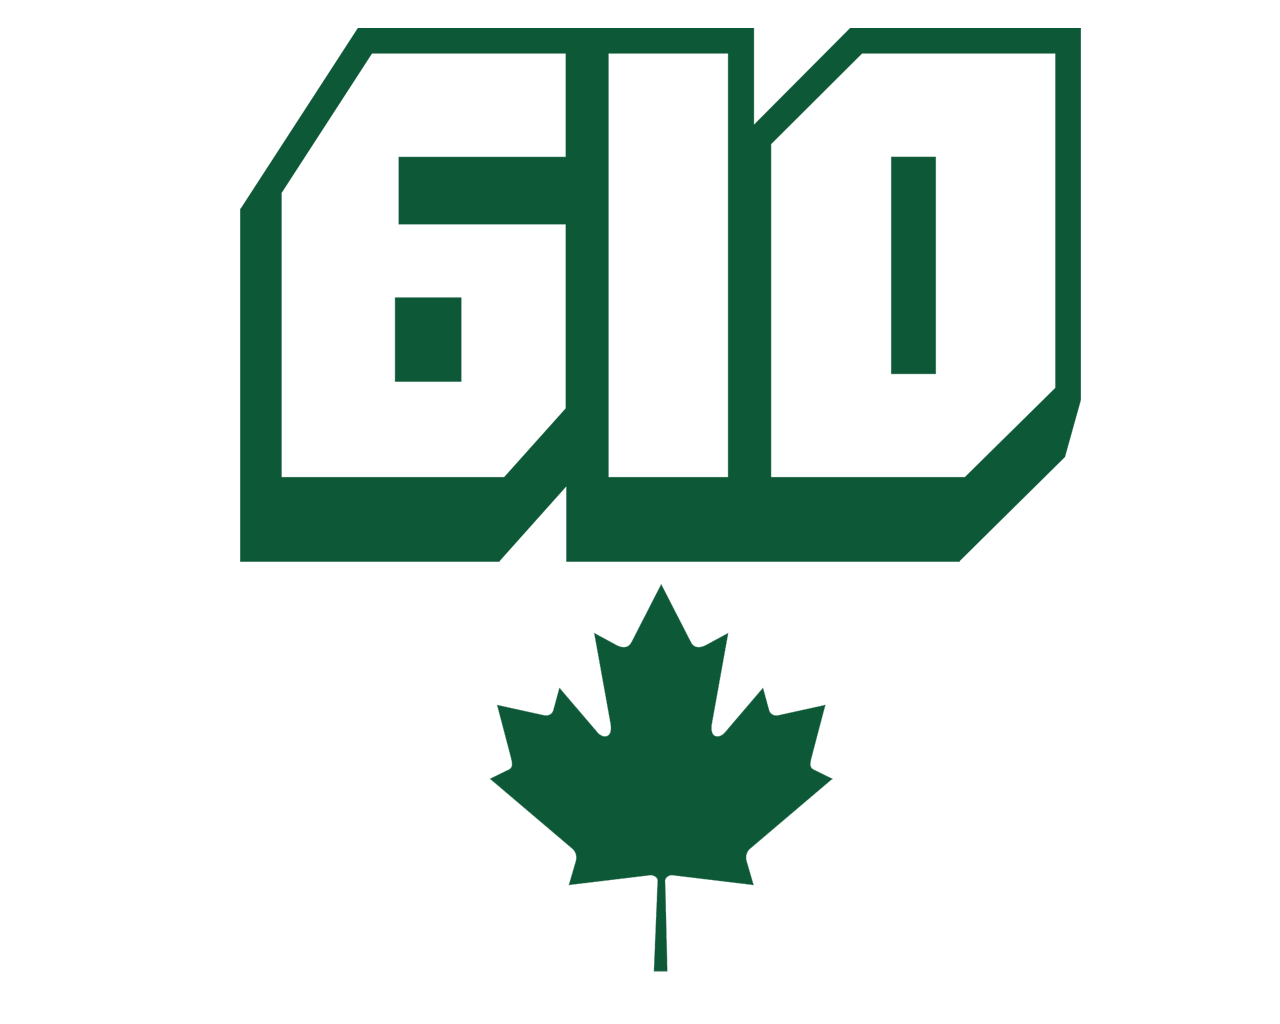 610-and-maple-leaf